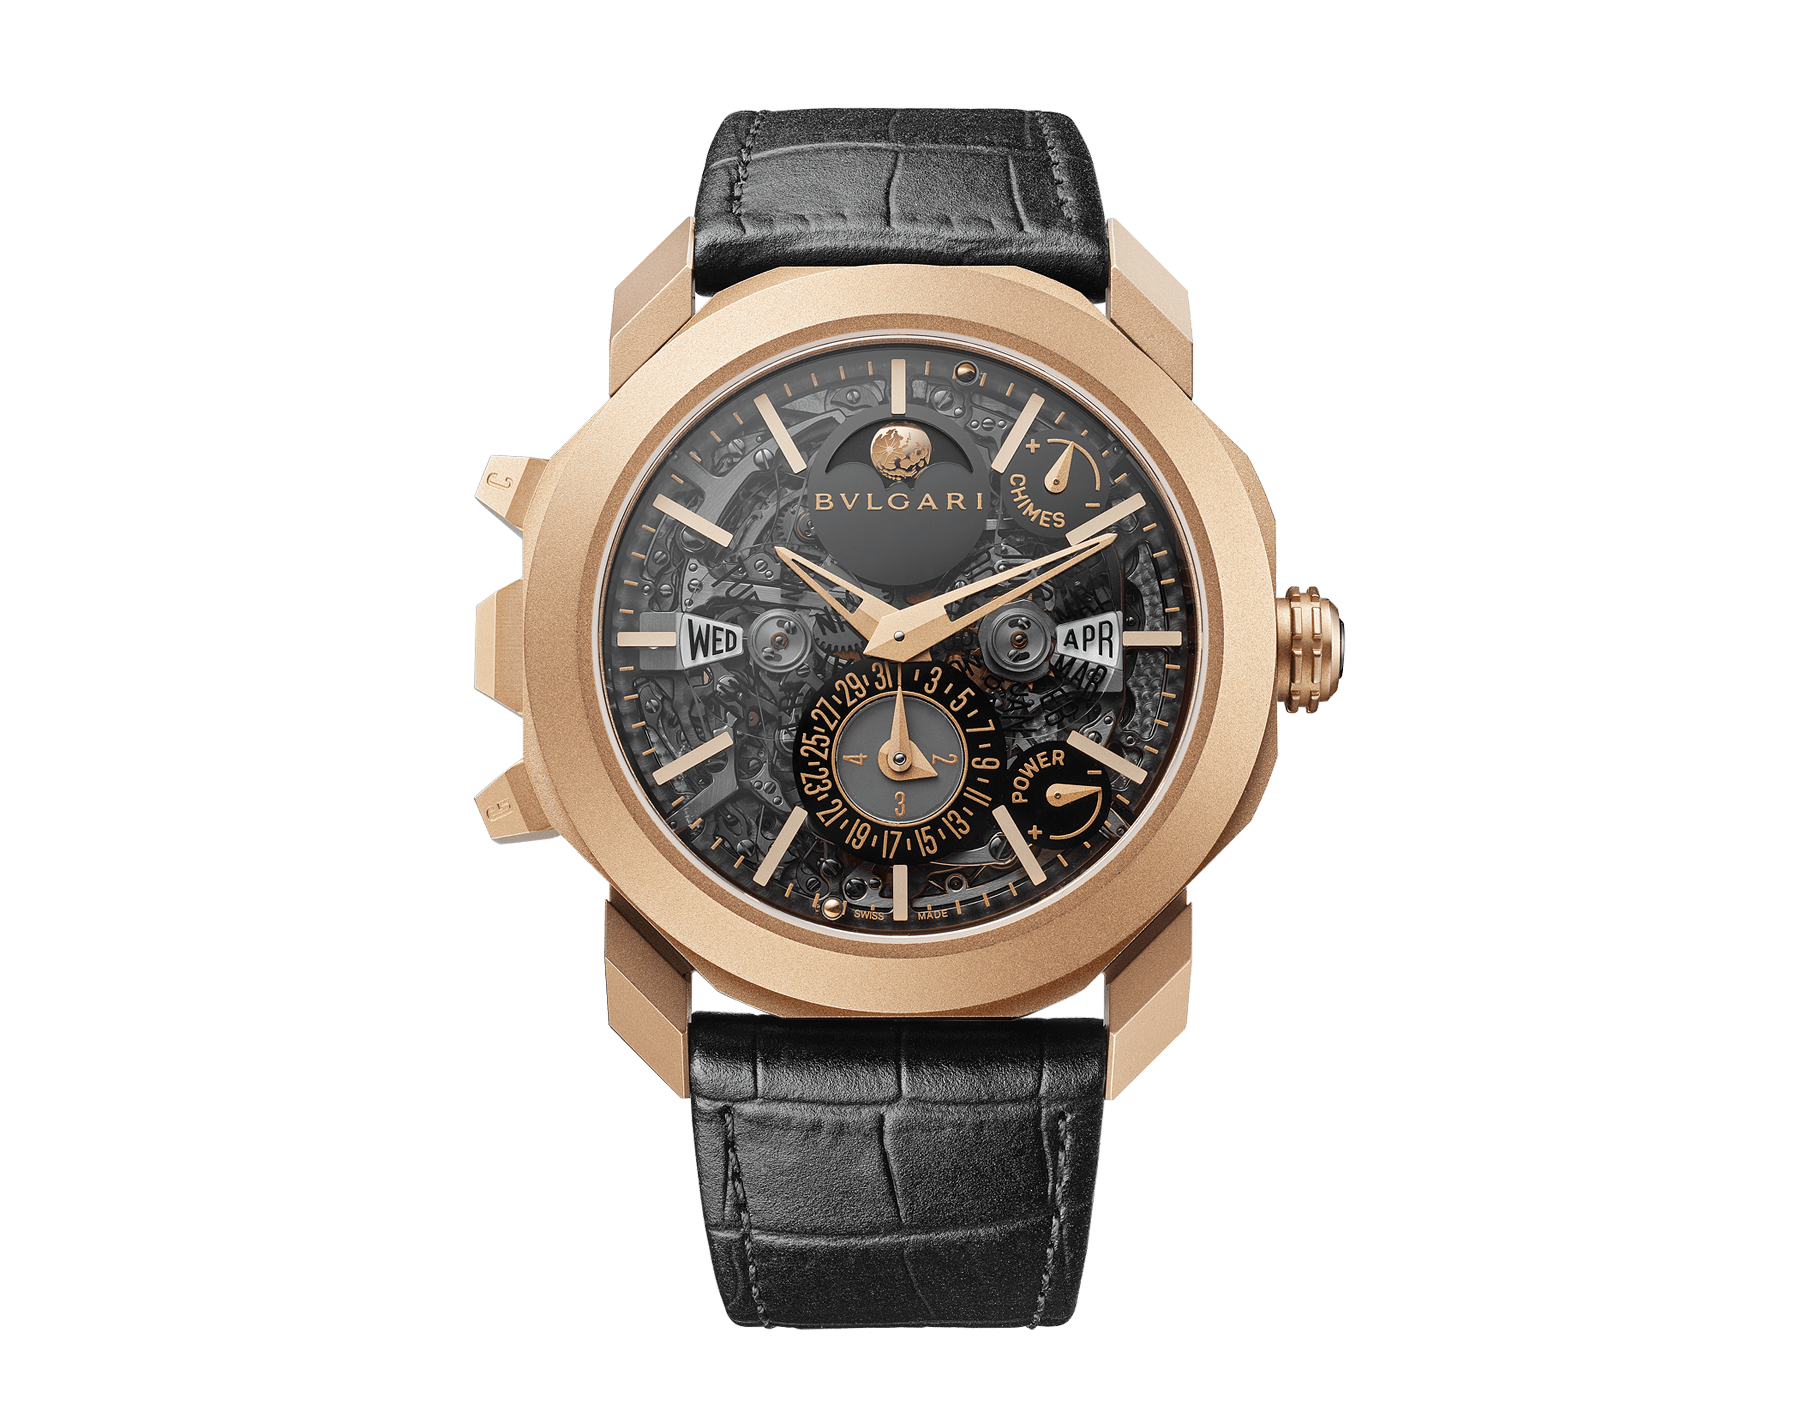 Octo Grande Sonnerie watch with mechanical manufacture movement, Grande and Petite Sonnerie, minute repeater, tourbillon, perpetual calendar, moonphases, movement and chime power reserve indicator, 18 kt rose gold sandblasted case, skeletonized dial and black alligator bracelet 102891 image 1